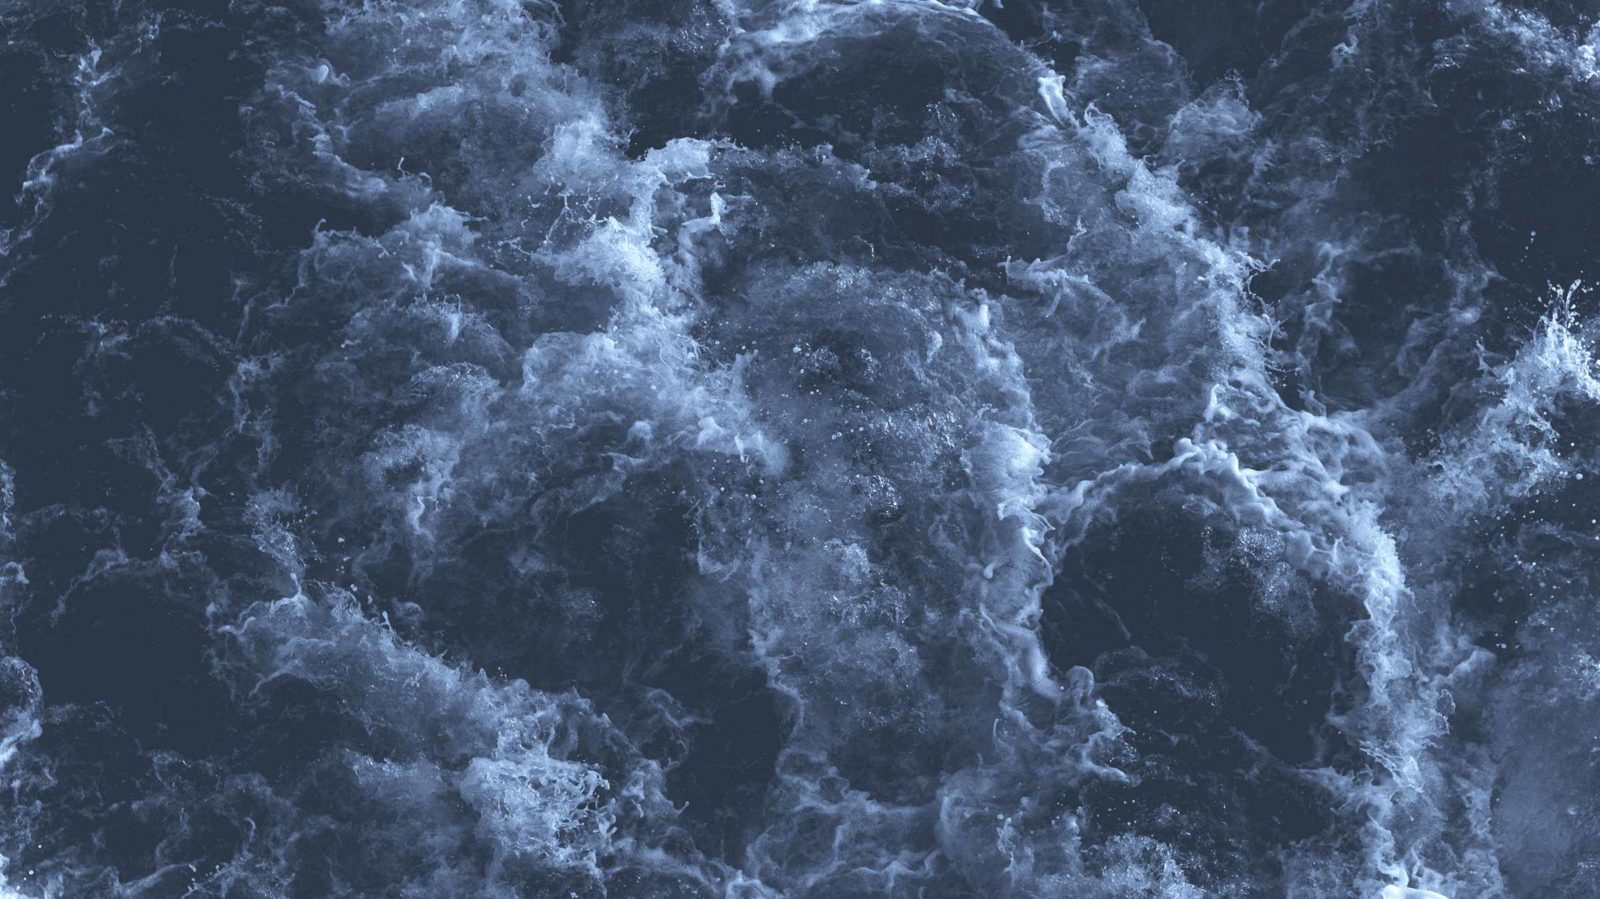 Birds eye view of a stormy sea